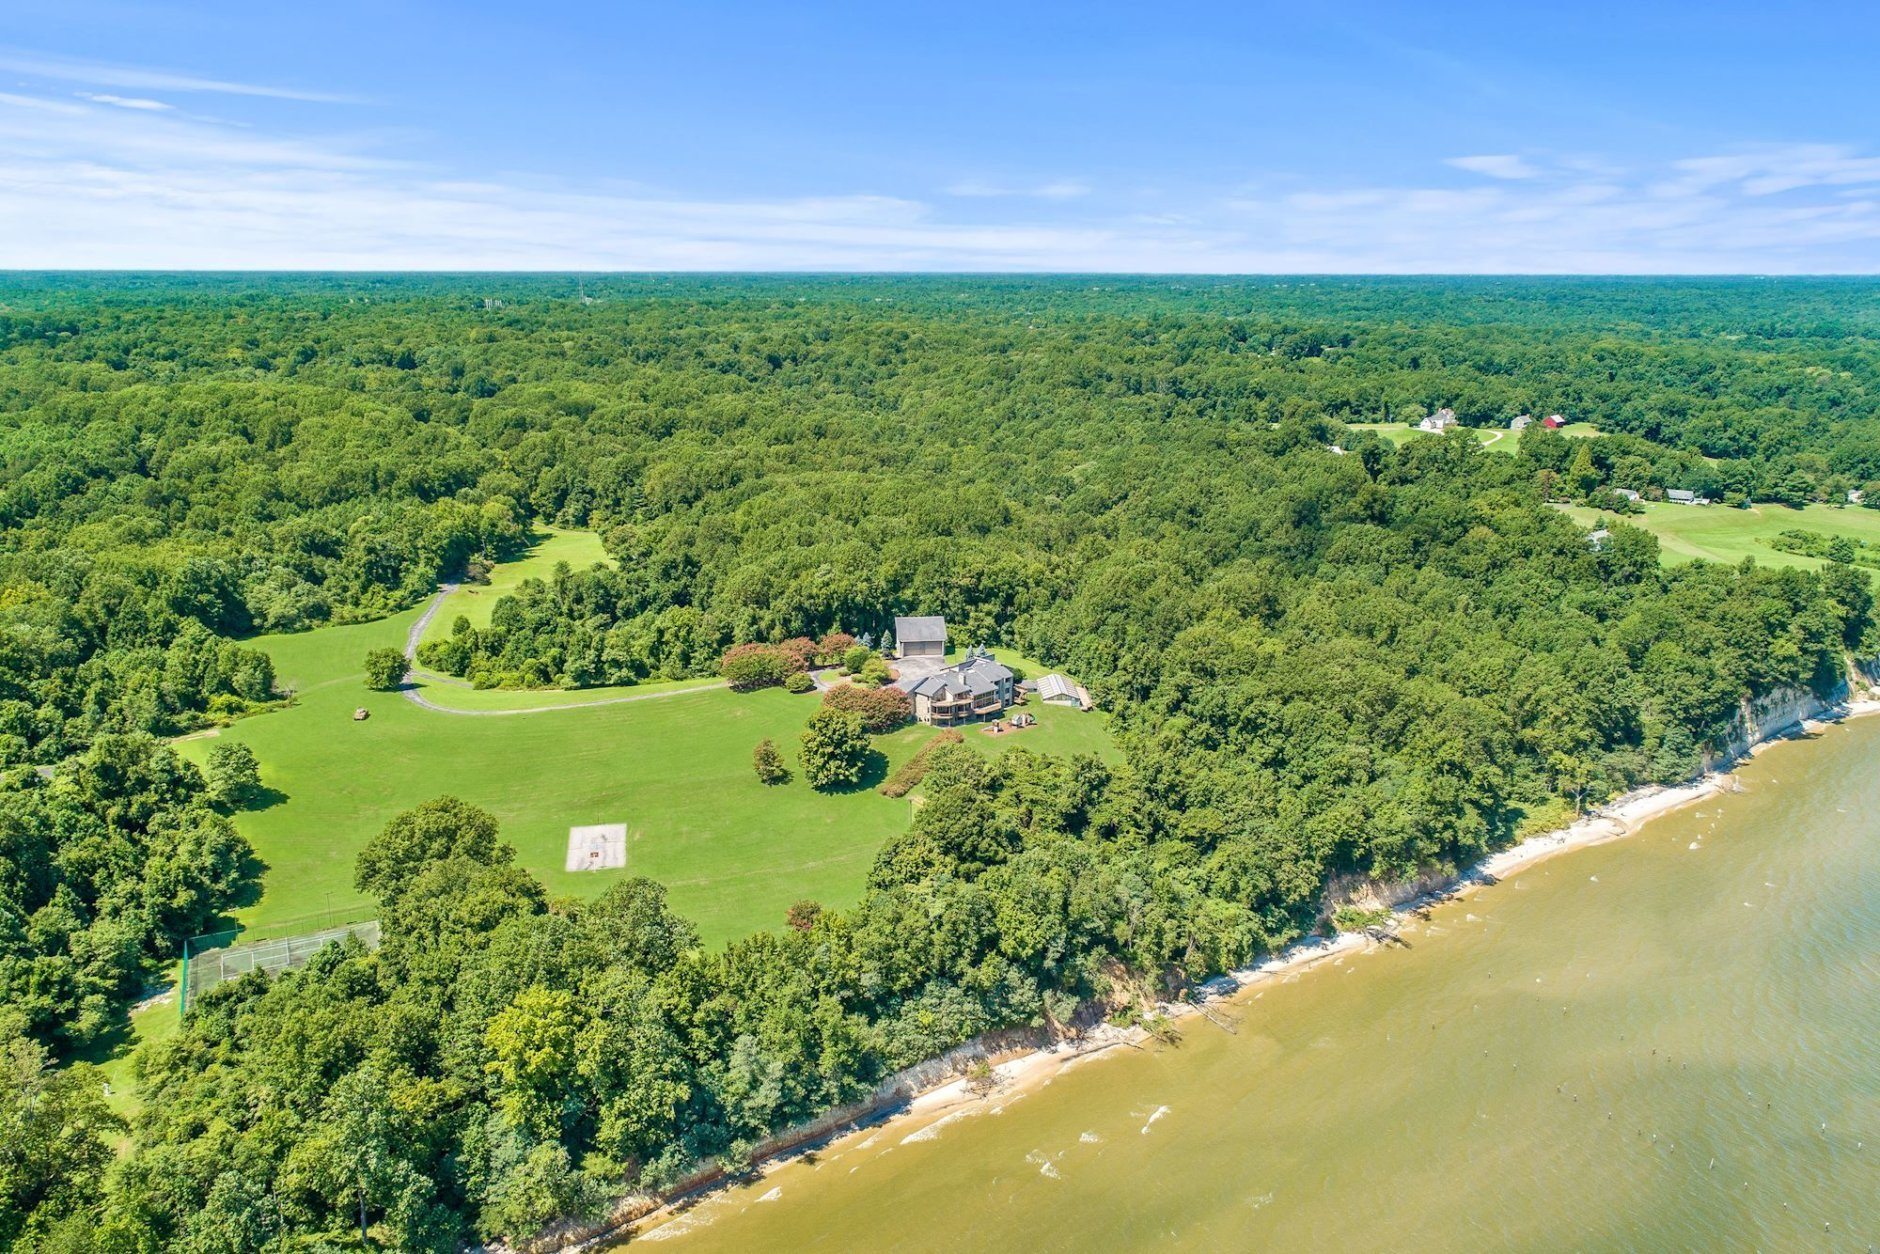 Peregrine Cliff is surrounded by lush trees. (Courtesy Cummings & Co. Realtors)